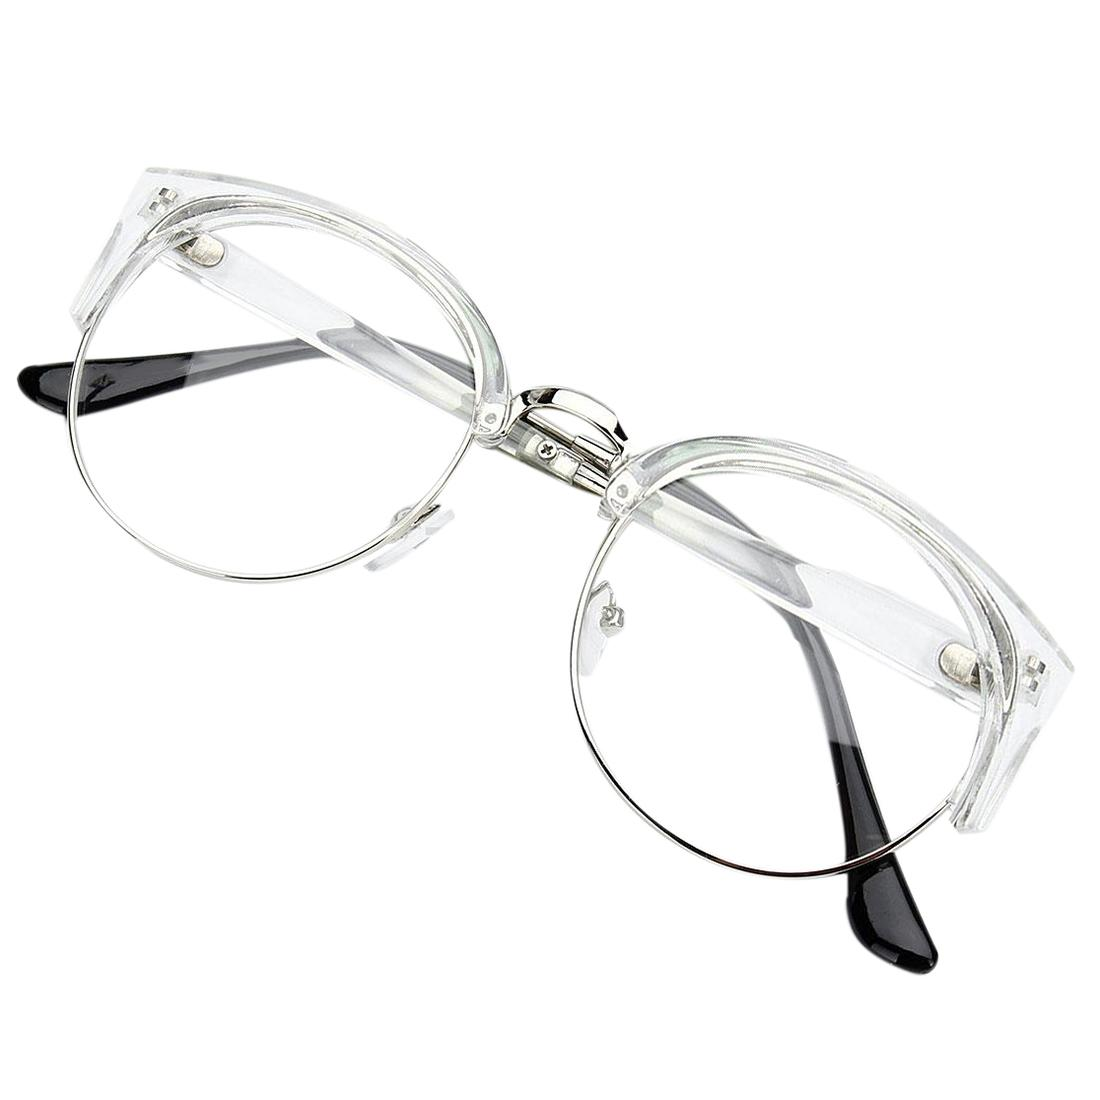 6912ee0c98 Wholesale Retro Style Women Men Round Nerd Glasses Clear Lens Eyewear Metal  Frame Glasses Colors Transparent White+Silver Frame Cheap Sunglasses Mens  ...